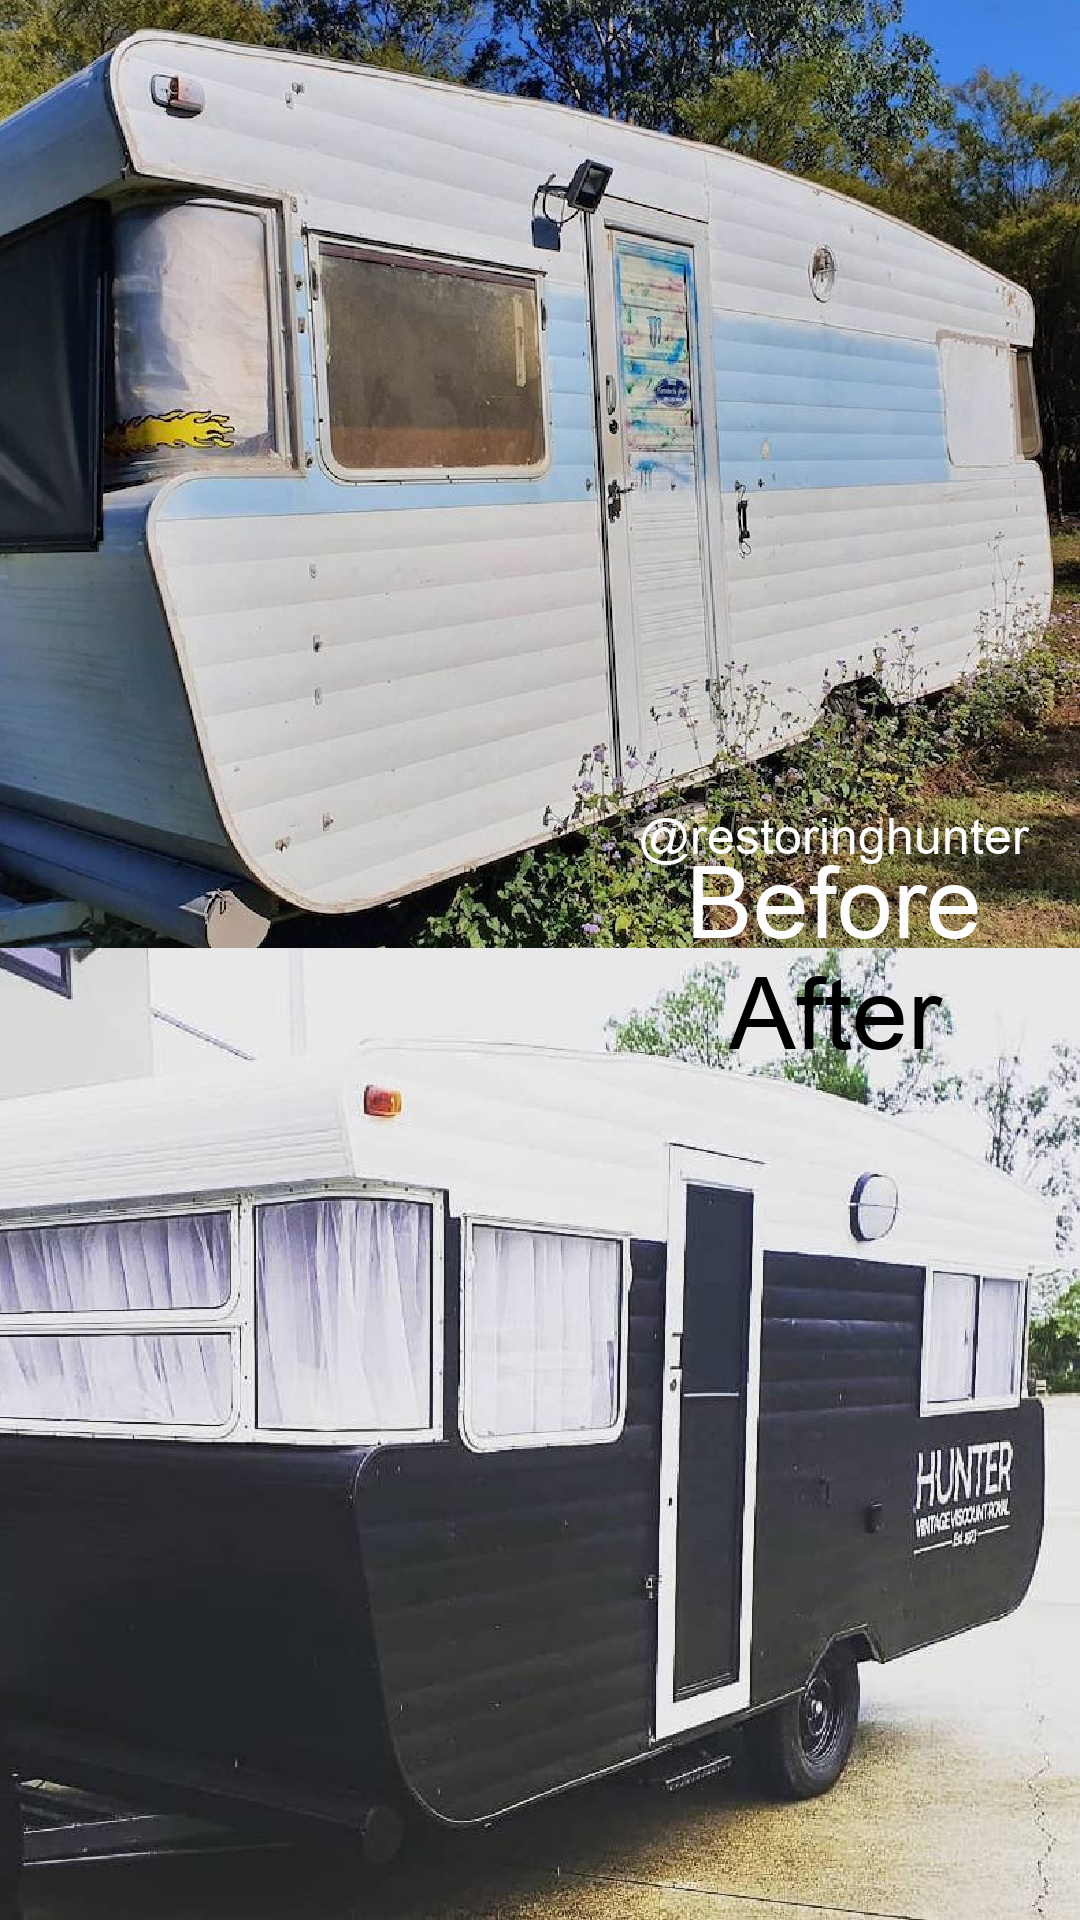 Before and after photos of the exterior of a renovated vintage travel trailer.